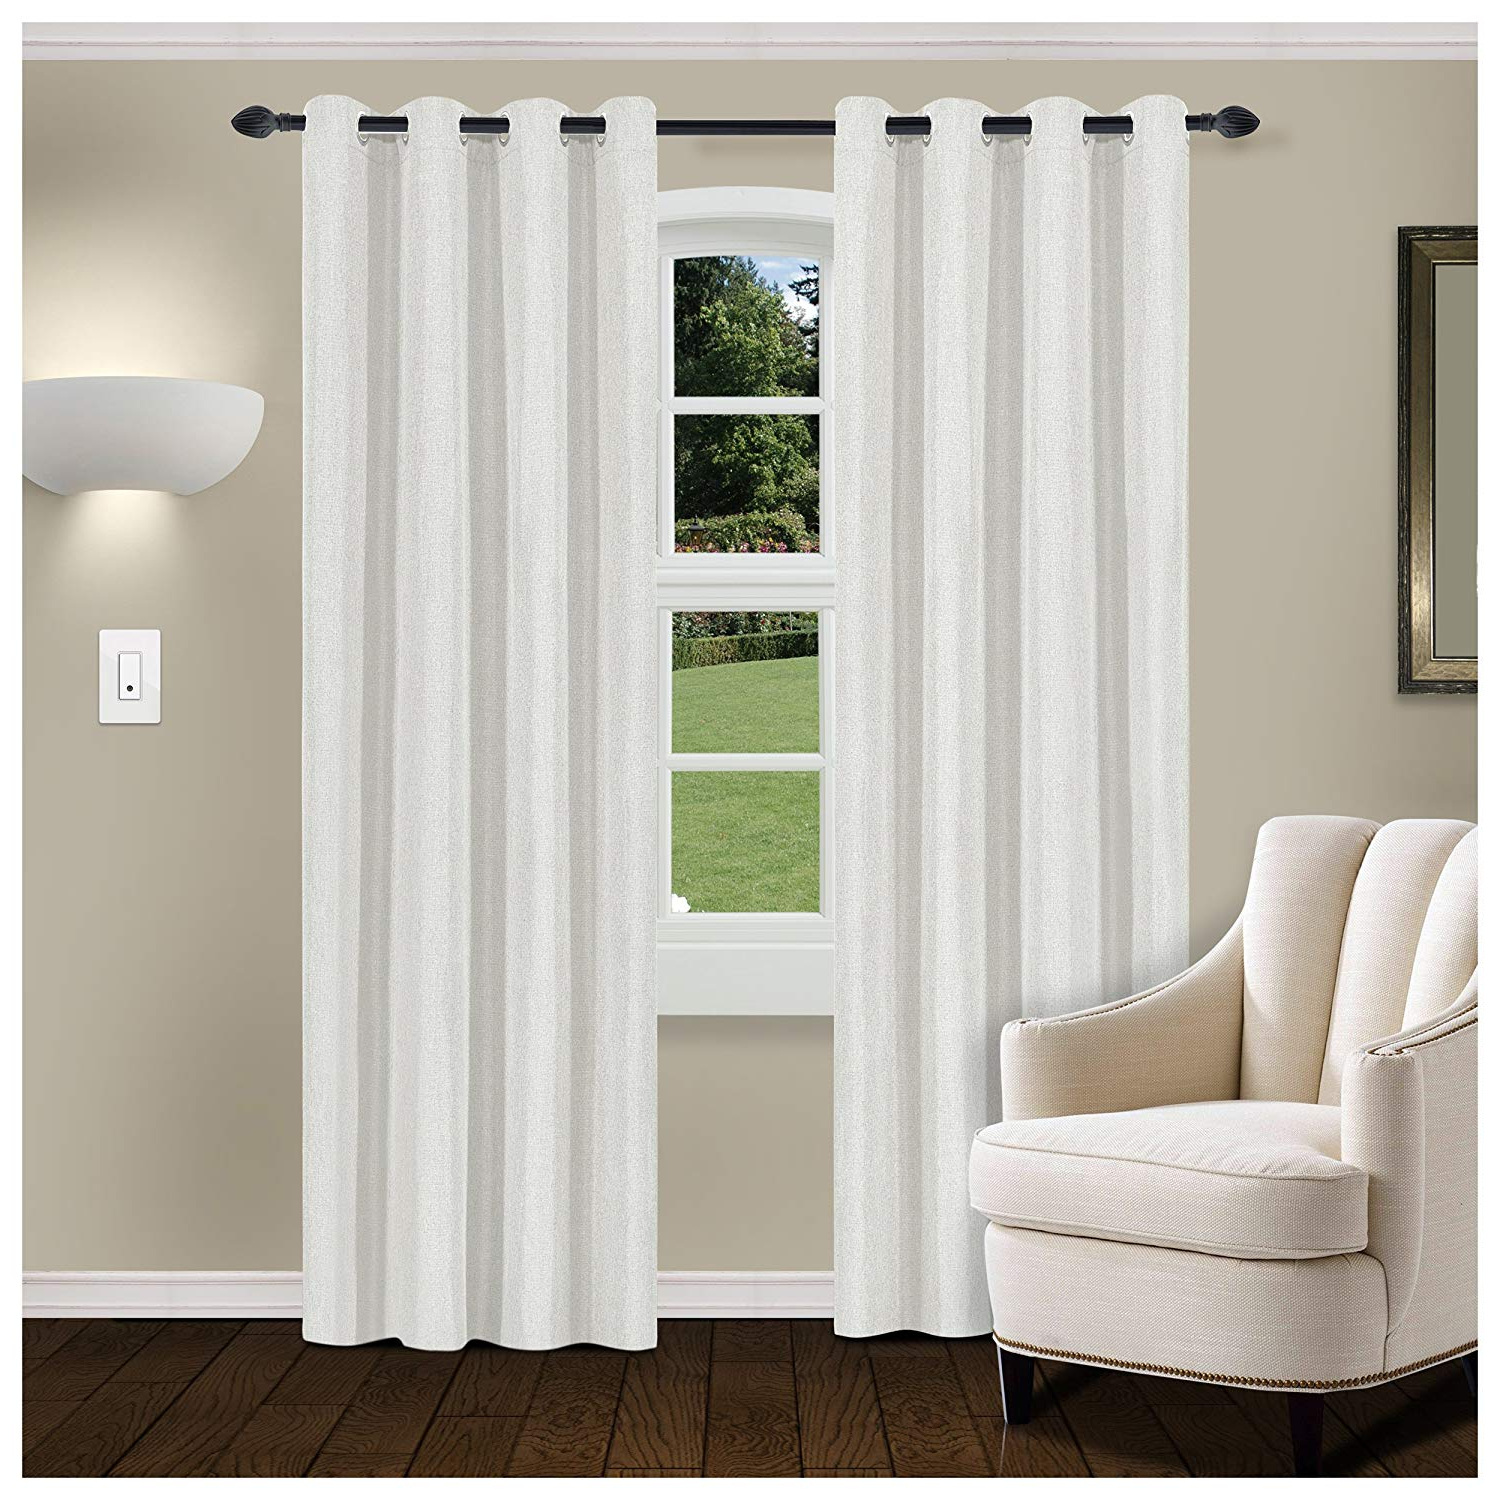 Superior Solid Insulated Thermal Blackout Grommet Curtain Panel Pairs Inside Favorite Superior Linen Textured Blackout Curtain Set Of 2, Thermal Insulated Panel  Pair With Grommet Top Header, Classic Natural Look Room Darkening Drapes, (View 18 of 20)